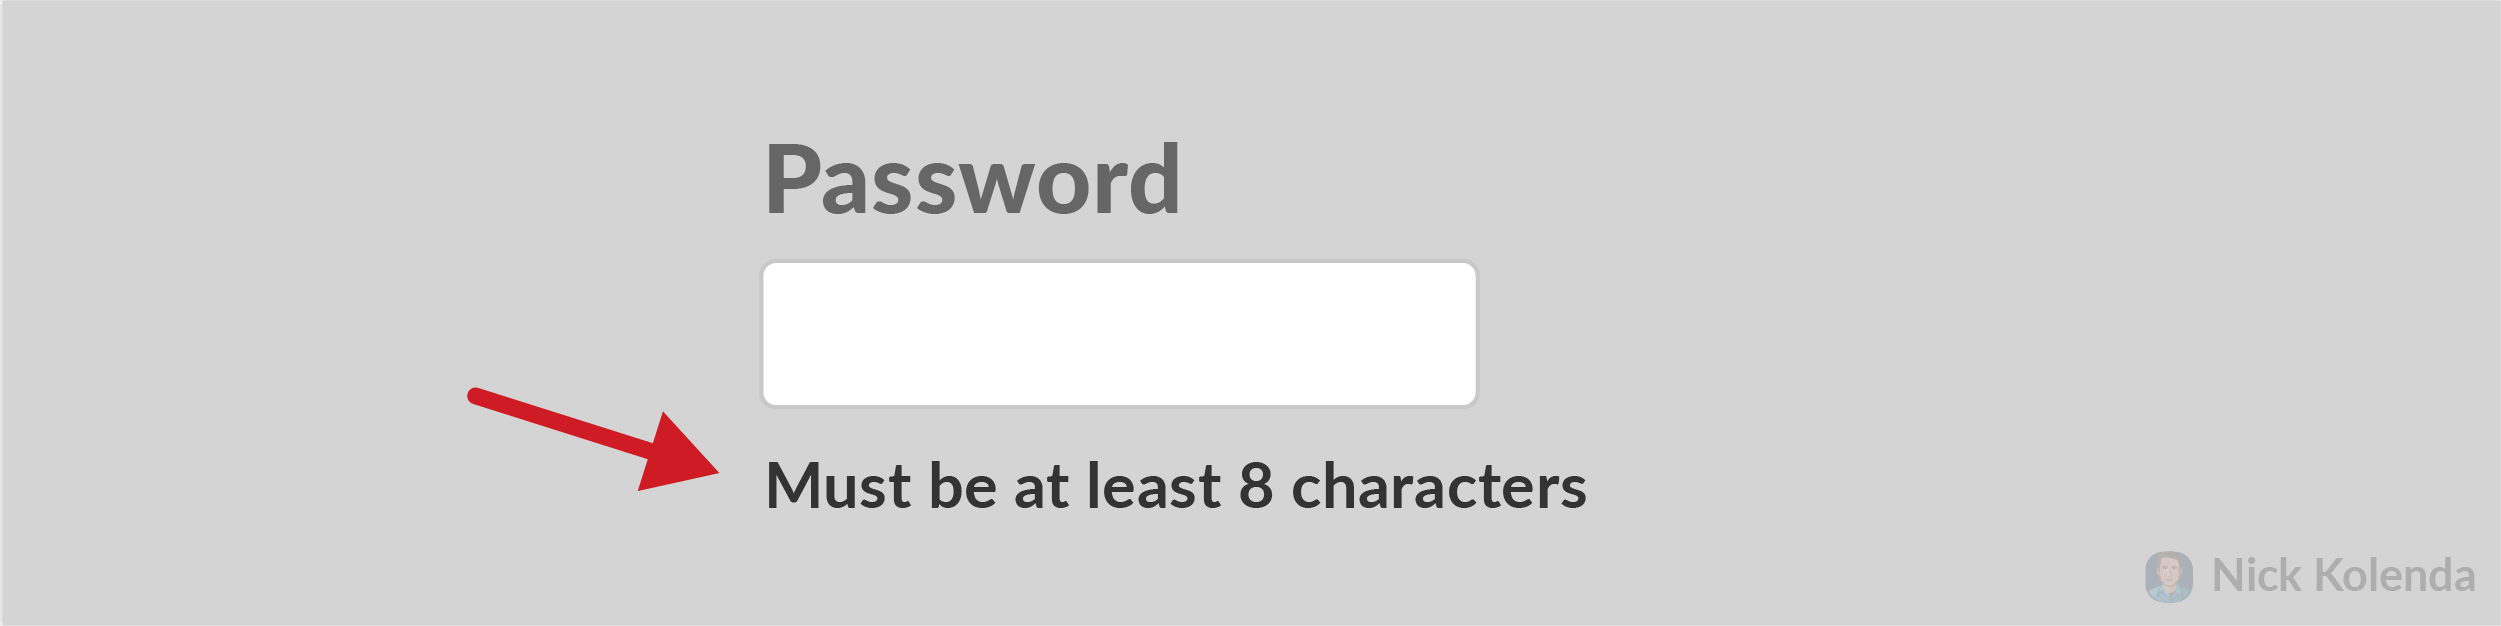 Password must be at least 8 characters